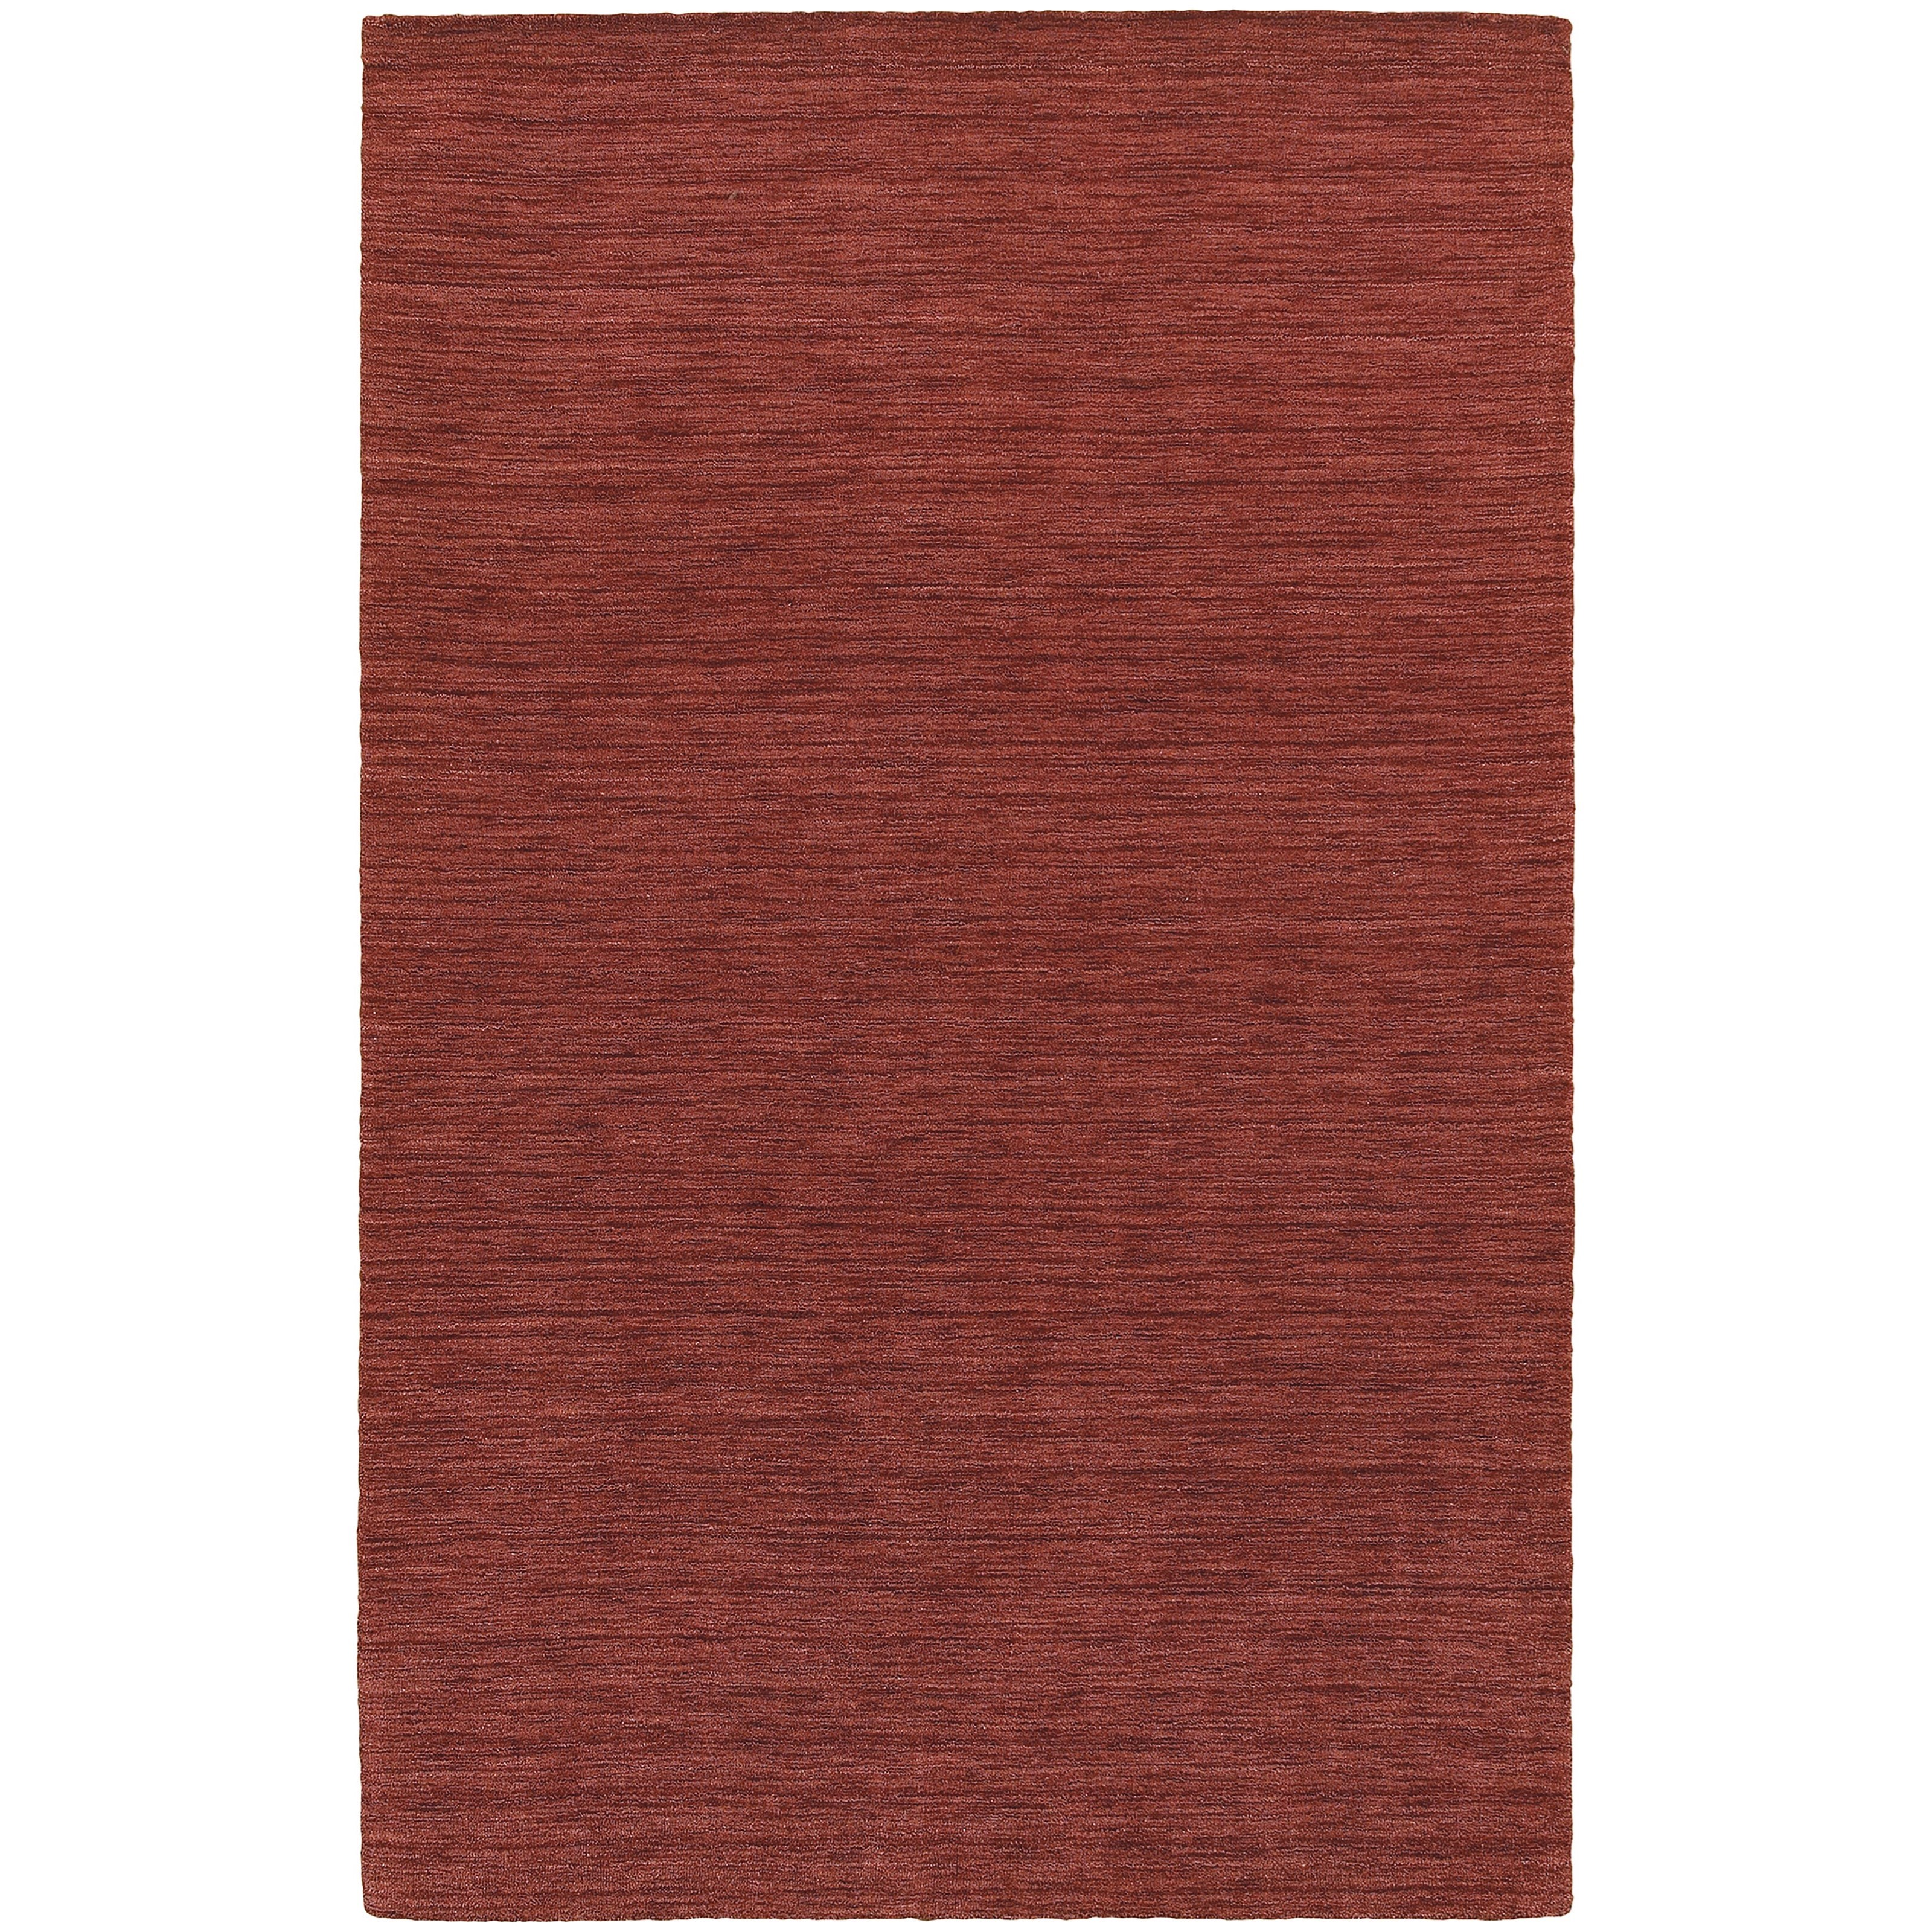 "Aniston 6' 0"" X  9' 0"" Rectangle Area Rug by Oriental Weavers at Steger's Furniture"